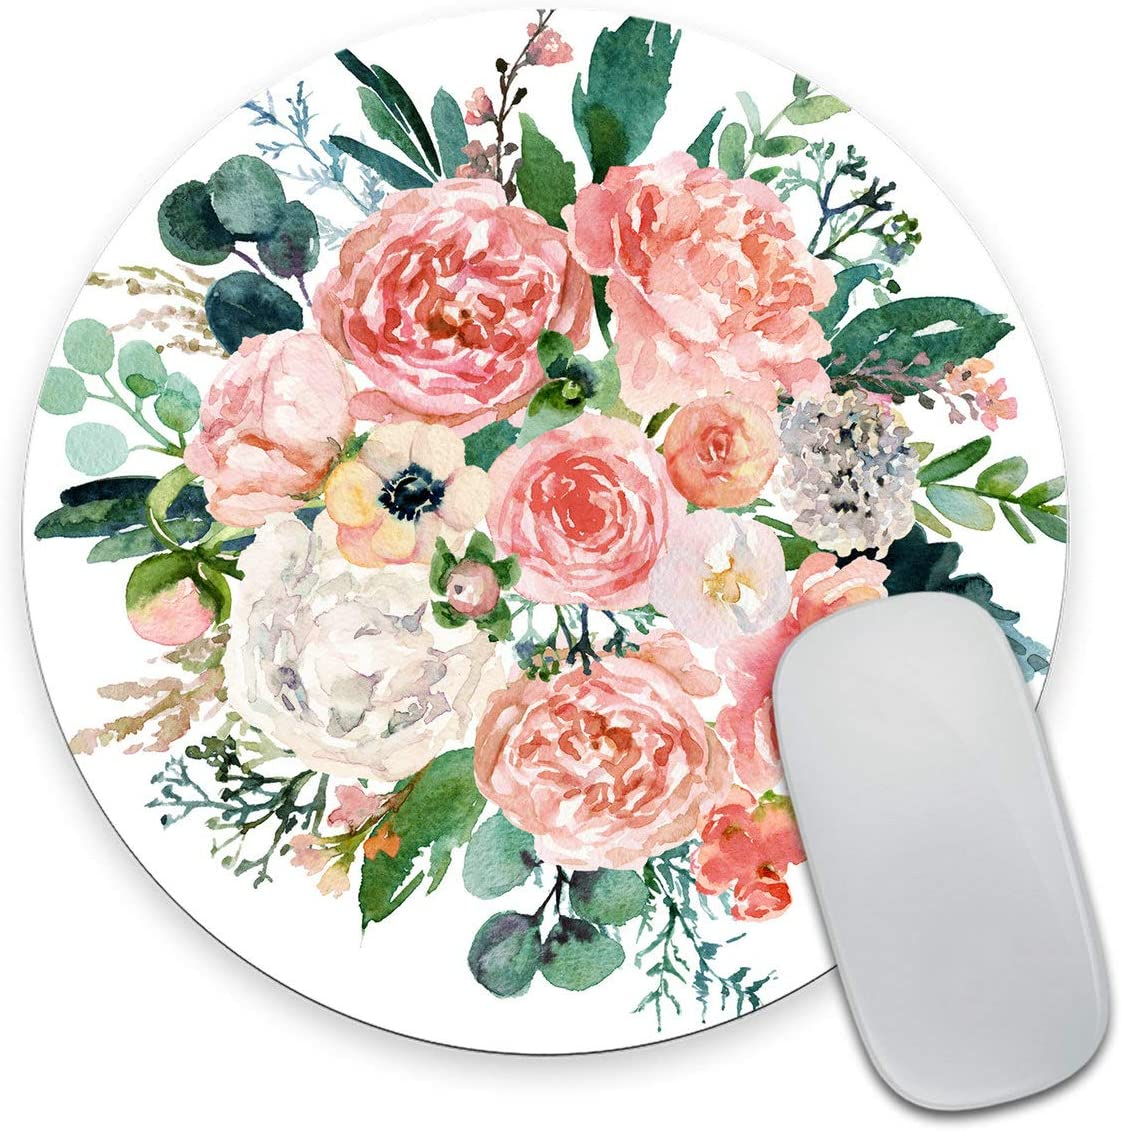 Smooffly Watercolor Floral Round Mouse pad Custom,Bright Pink Vivid Flowers Mouse Pads for Computers Laptop, Green Leaves Circular Non-Slip Rubber Mousepad